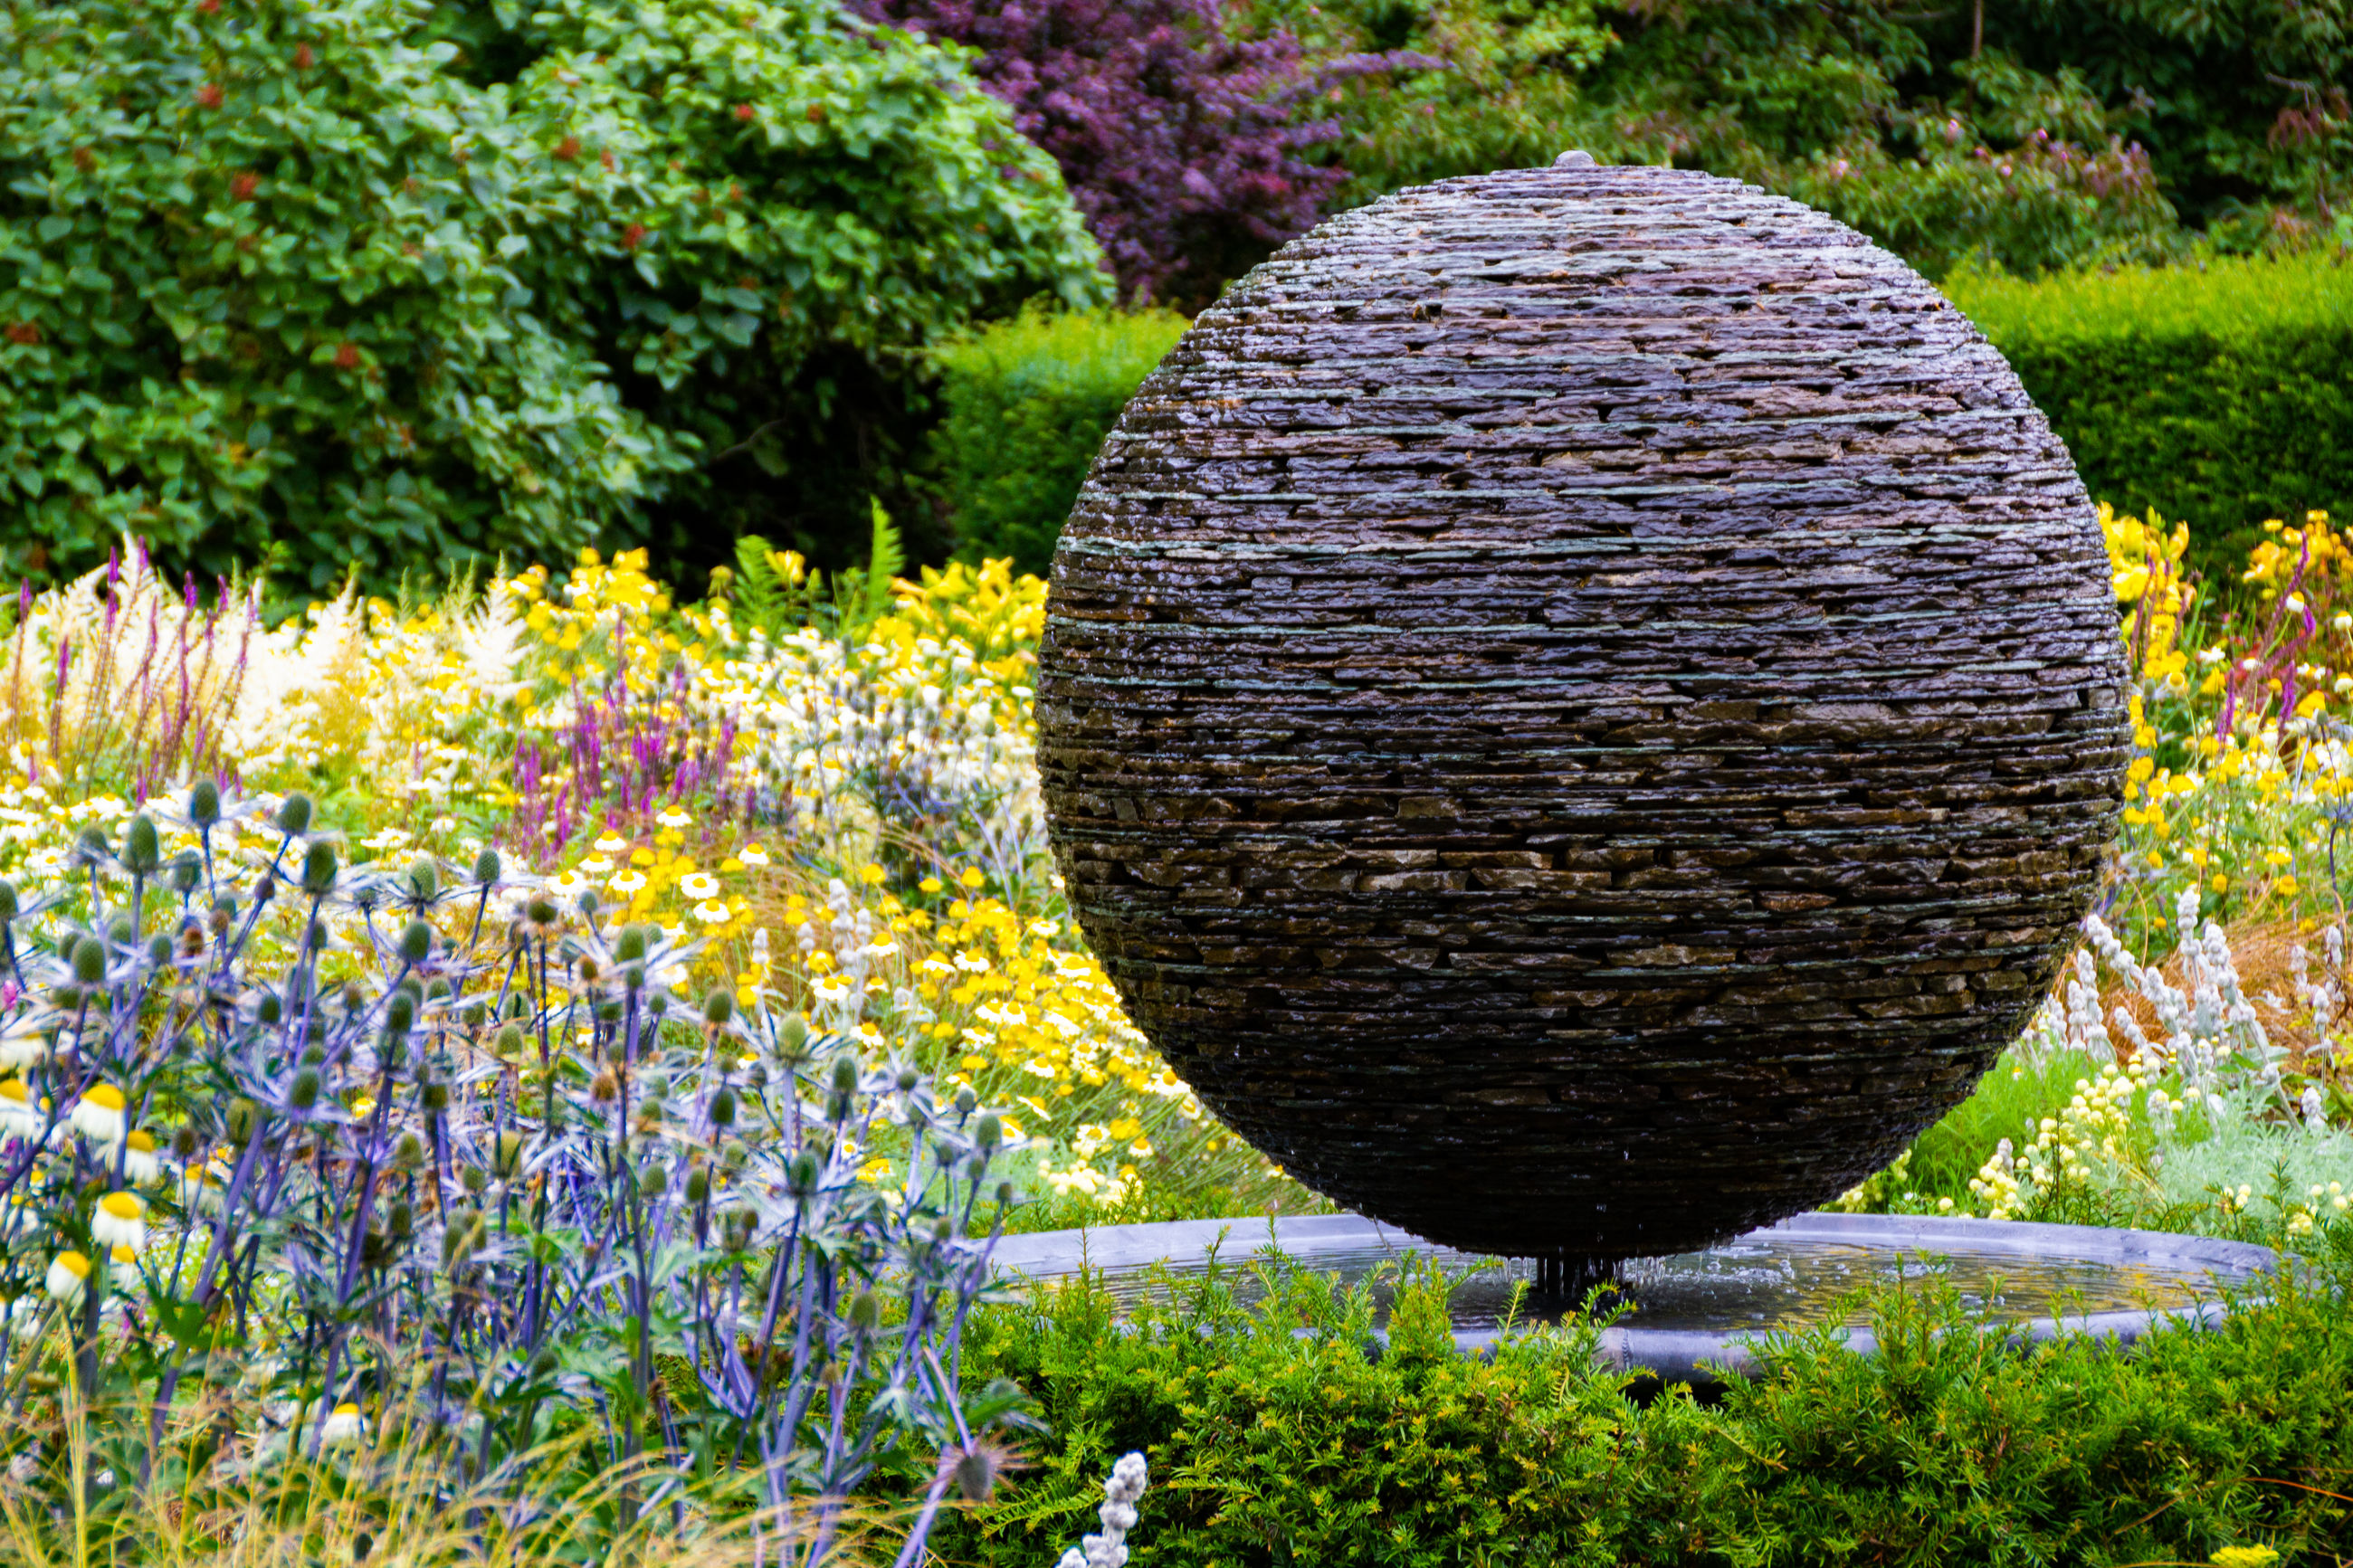 plant, nature, flower, no people, grass, flowering plant, day, beauty in nature, field, growth, land, tree, outdoors, agriculture, sunlight, freshness, circle, landscape, close-up, geometric shape, flowerbed, purple, ornamental garden